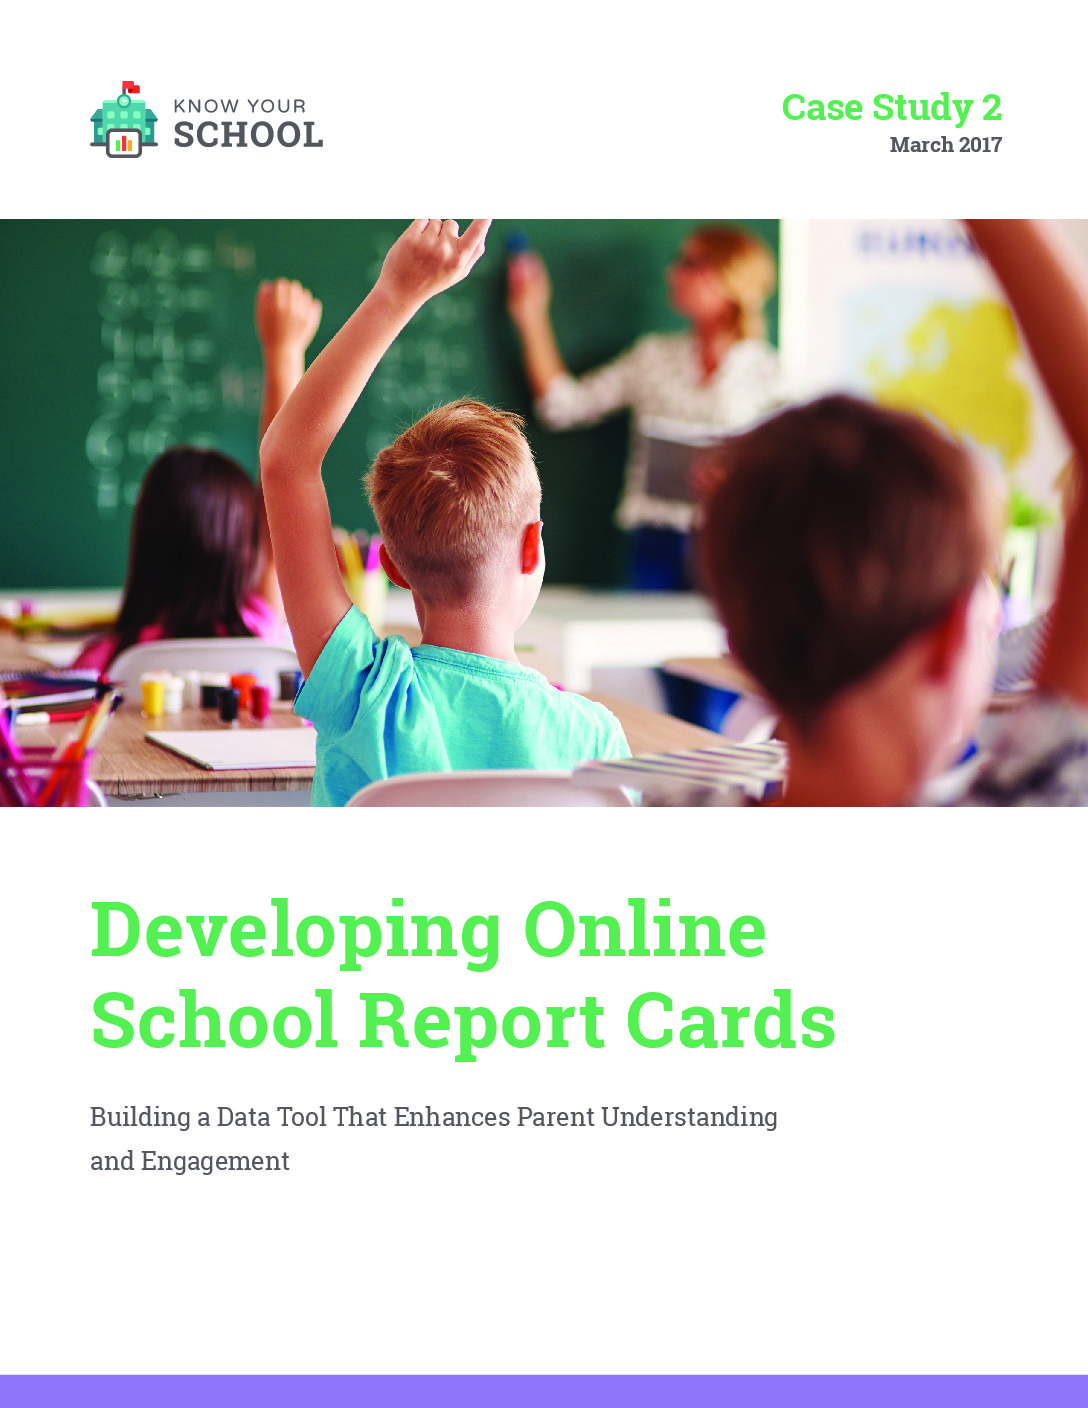 Know Your School &#8211; Developing Online School Report Cards &#8211; March 2017>									 									</a> 									<a href=